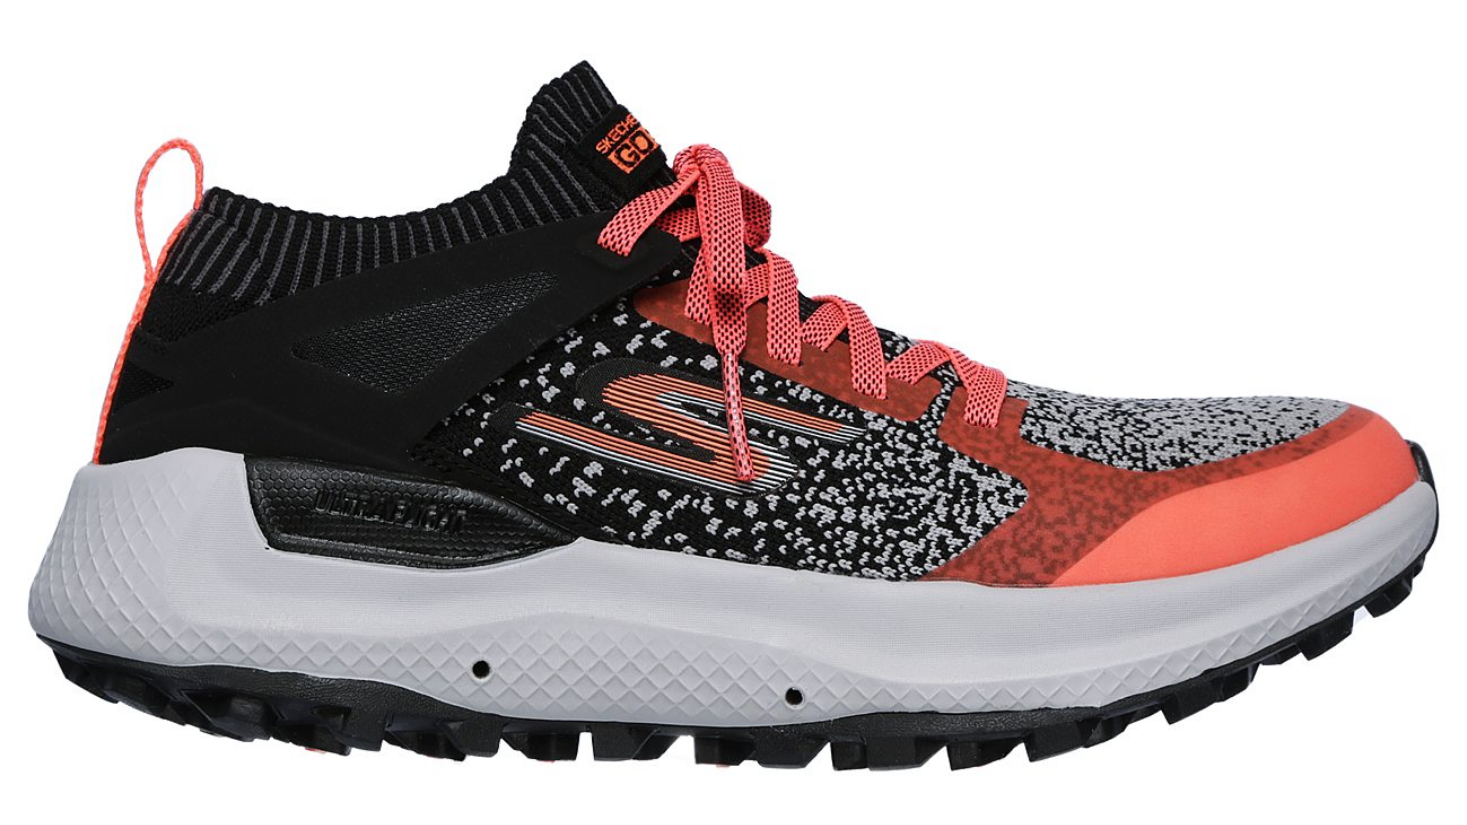 Skechers Running Shoes | Best Skechers Shoes 2019